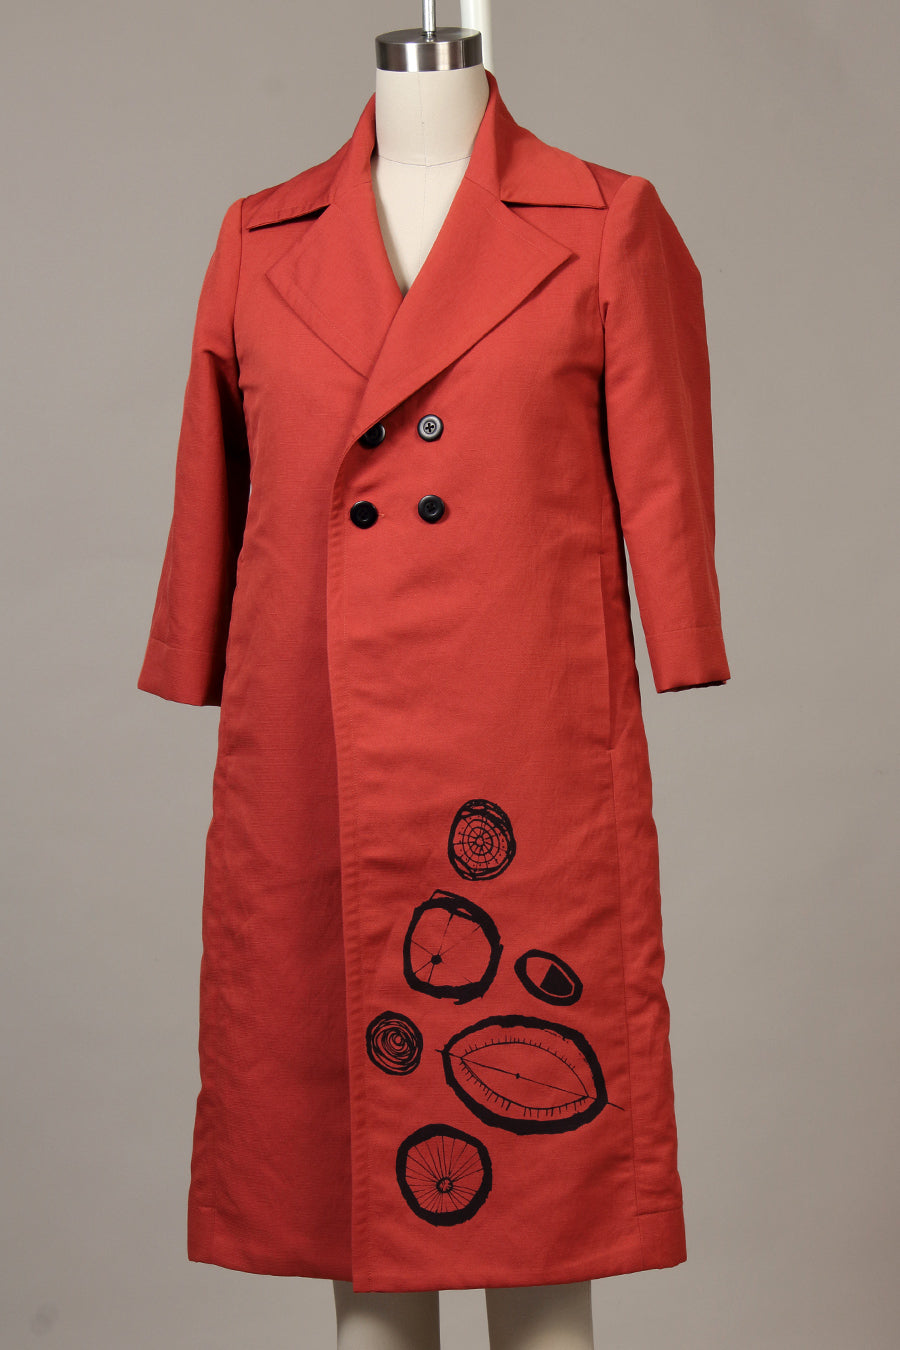 Double Basket Weave Garden Coat - rosehip